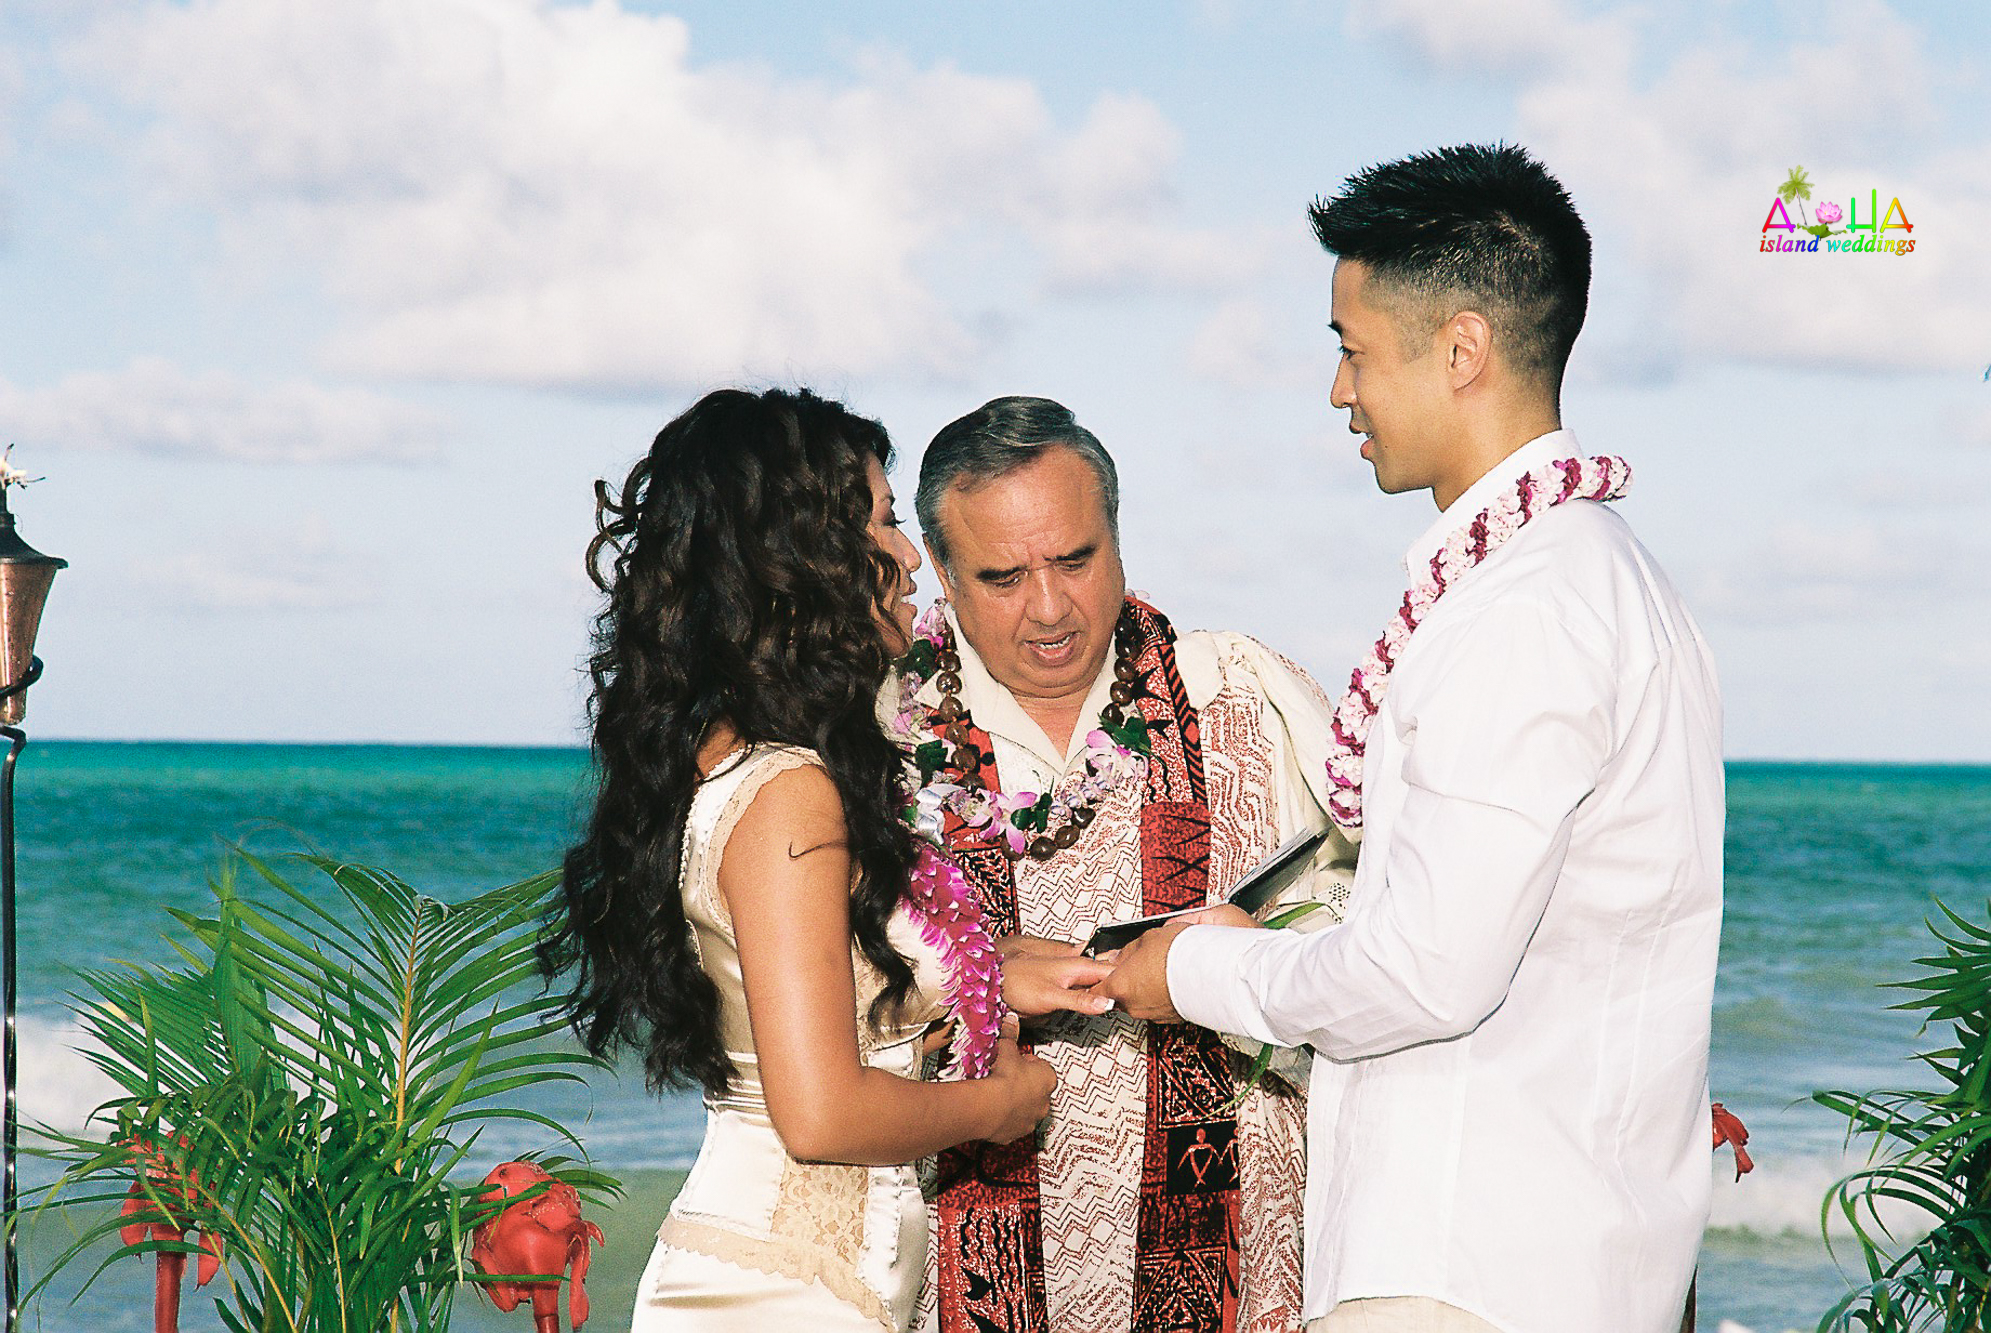 Beach wedding in Kailua-35